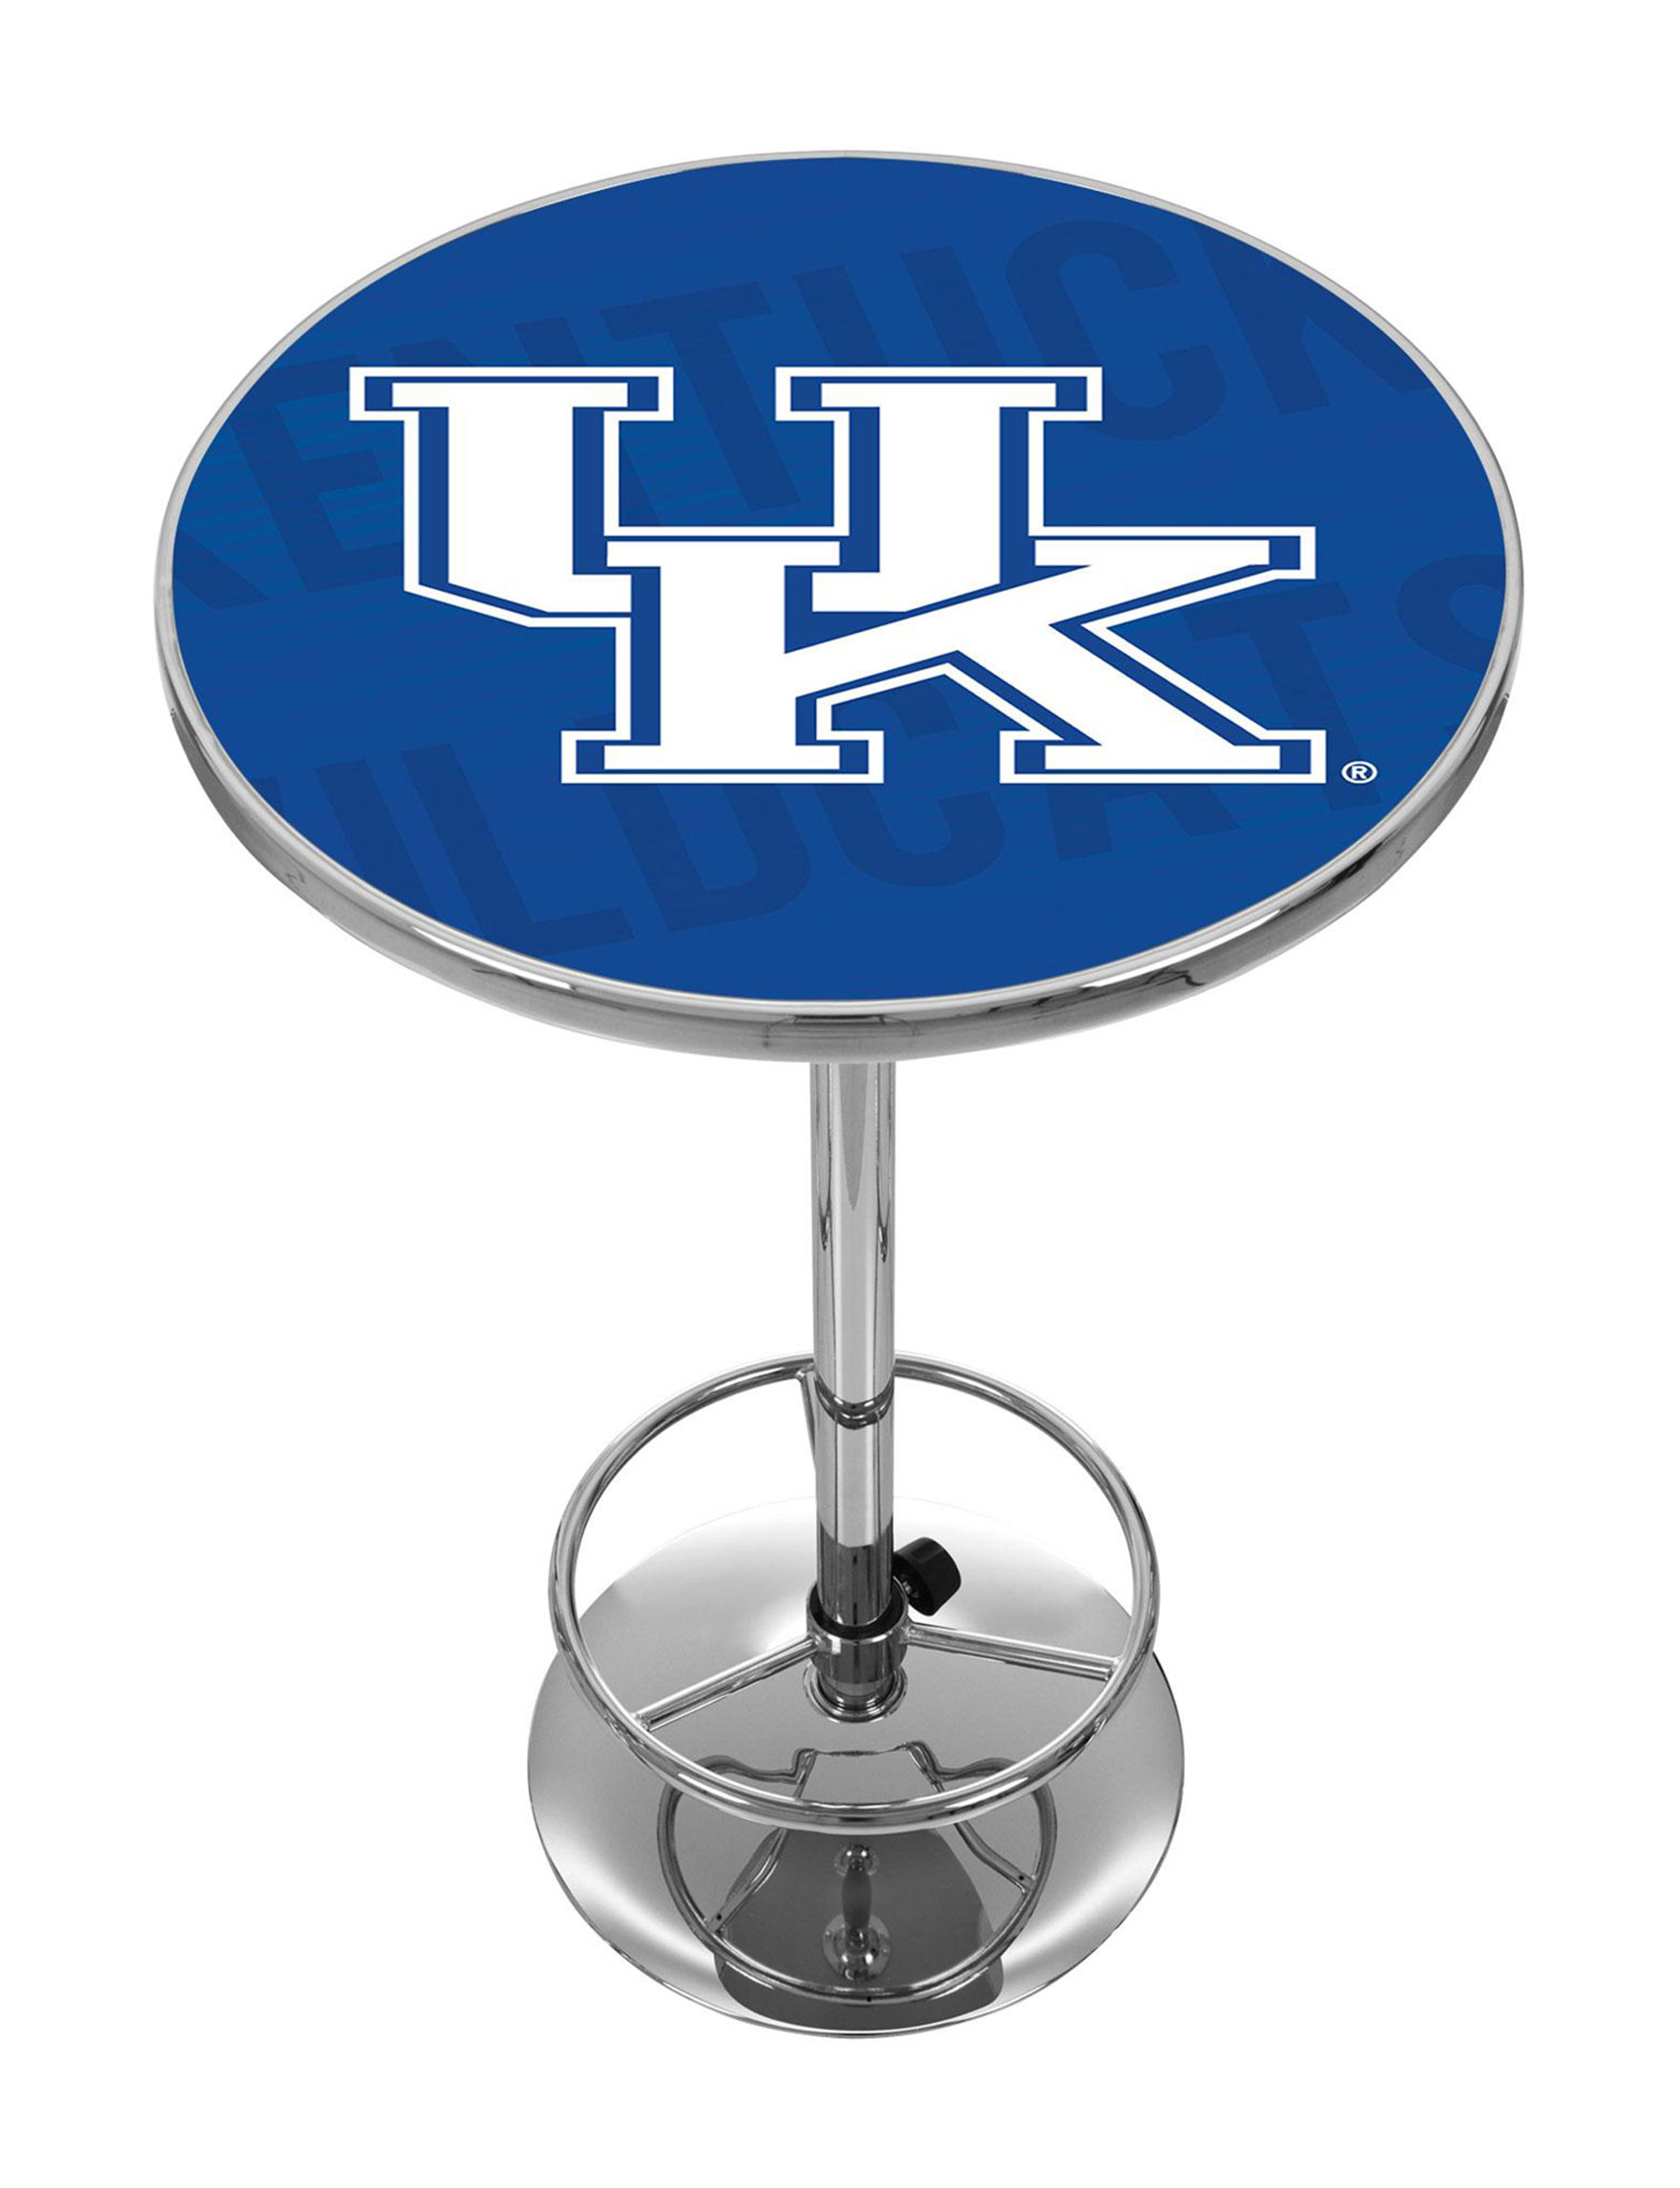 NCAA Blue / White Dining Tables Kitchen & Dining Furniture NCAA